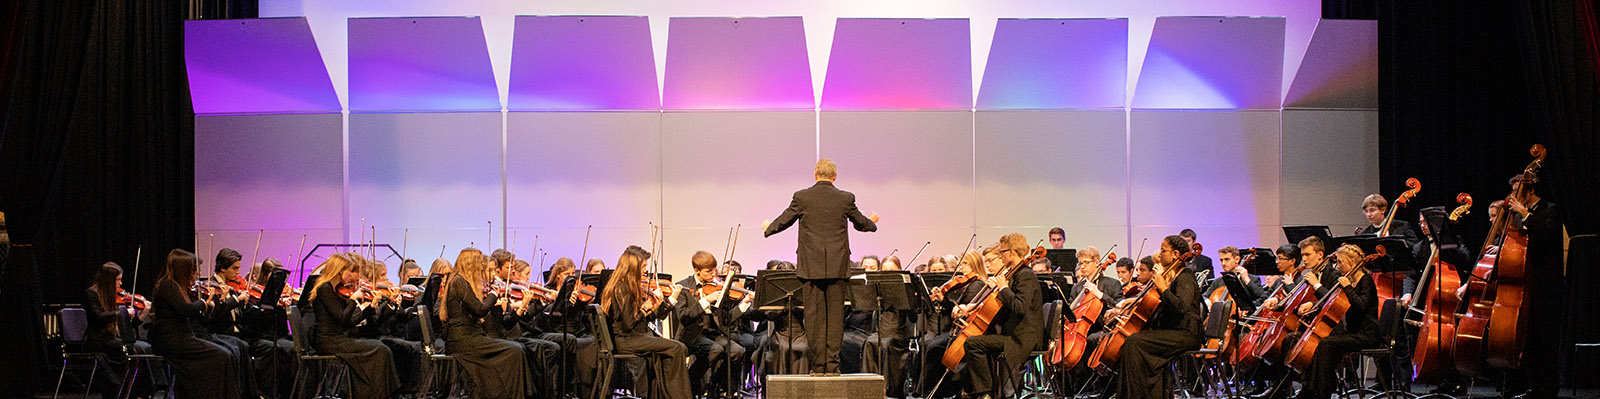 Orchestra Performance on stage with purple lighting